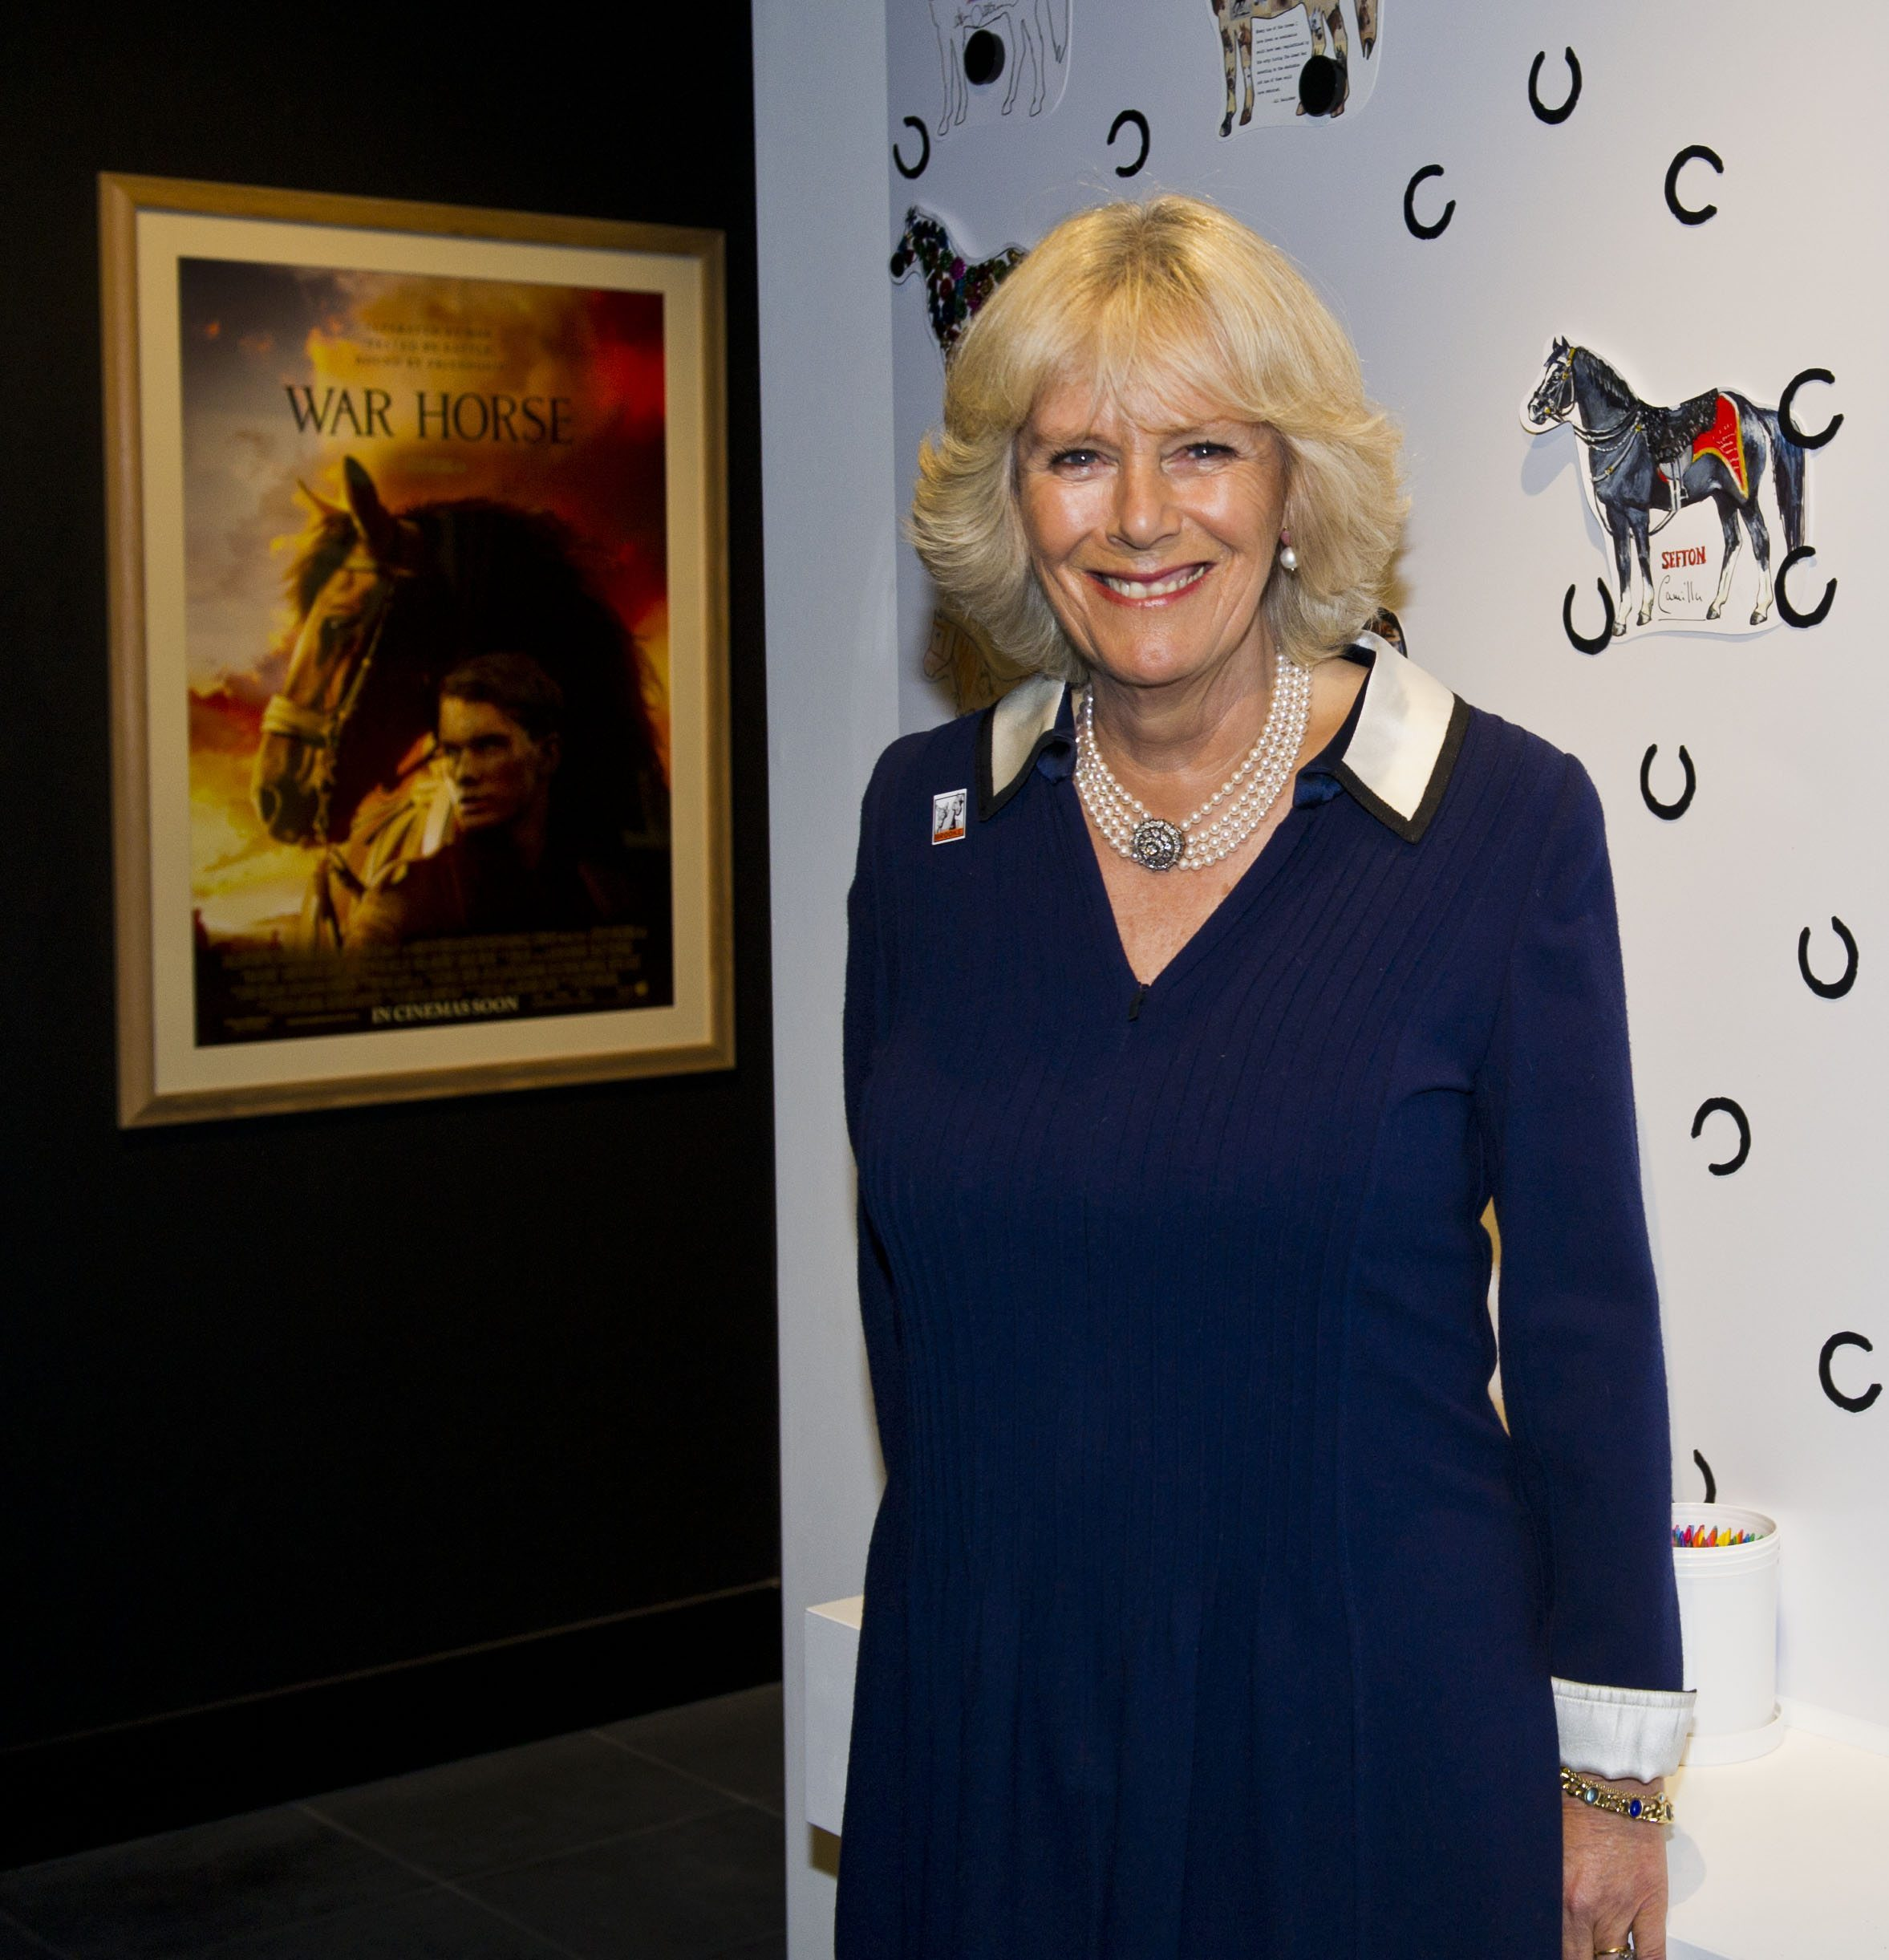 HRH The Duchess of Cornwall, President of the Brooke, joins Michael Morpurgo and supporters from the National Army Museum, the Brooke to celebrate the real-life horse heros at the Opening of the War Horse: Fact & Fiction exhibition at the National Army Museum on 19 October 2011